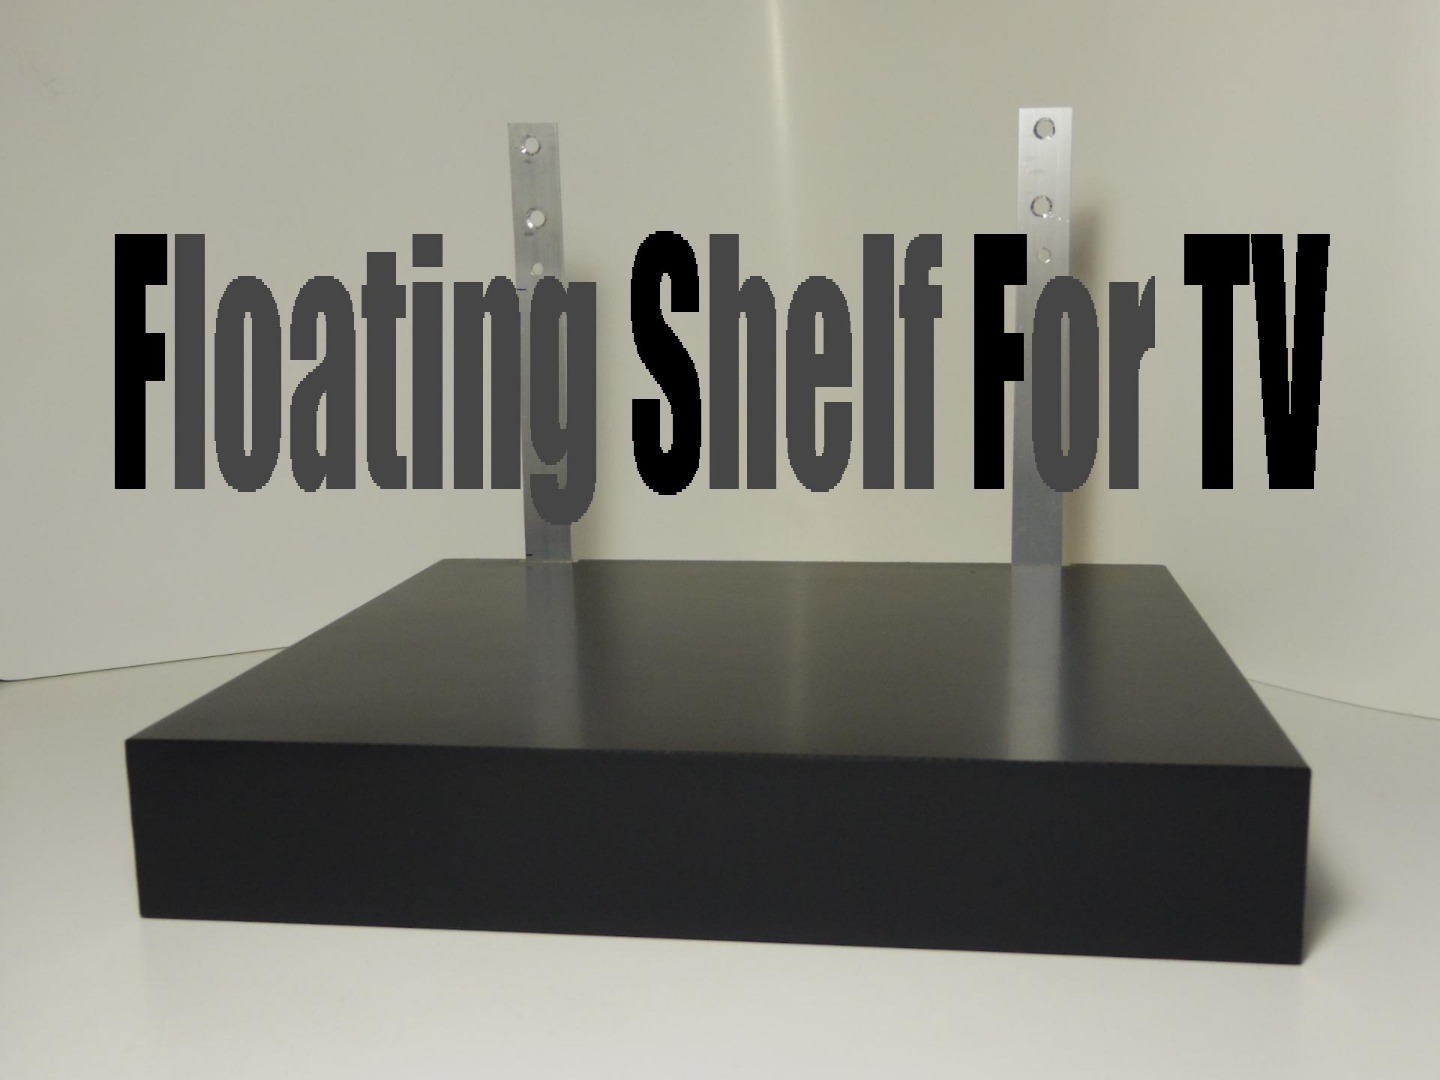 Picture of Floating Shelf for TV